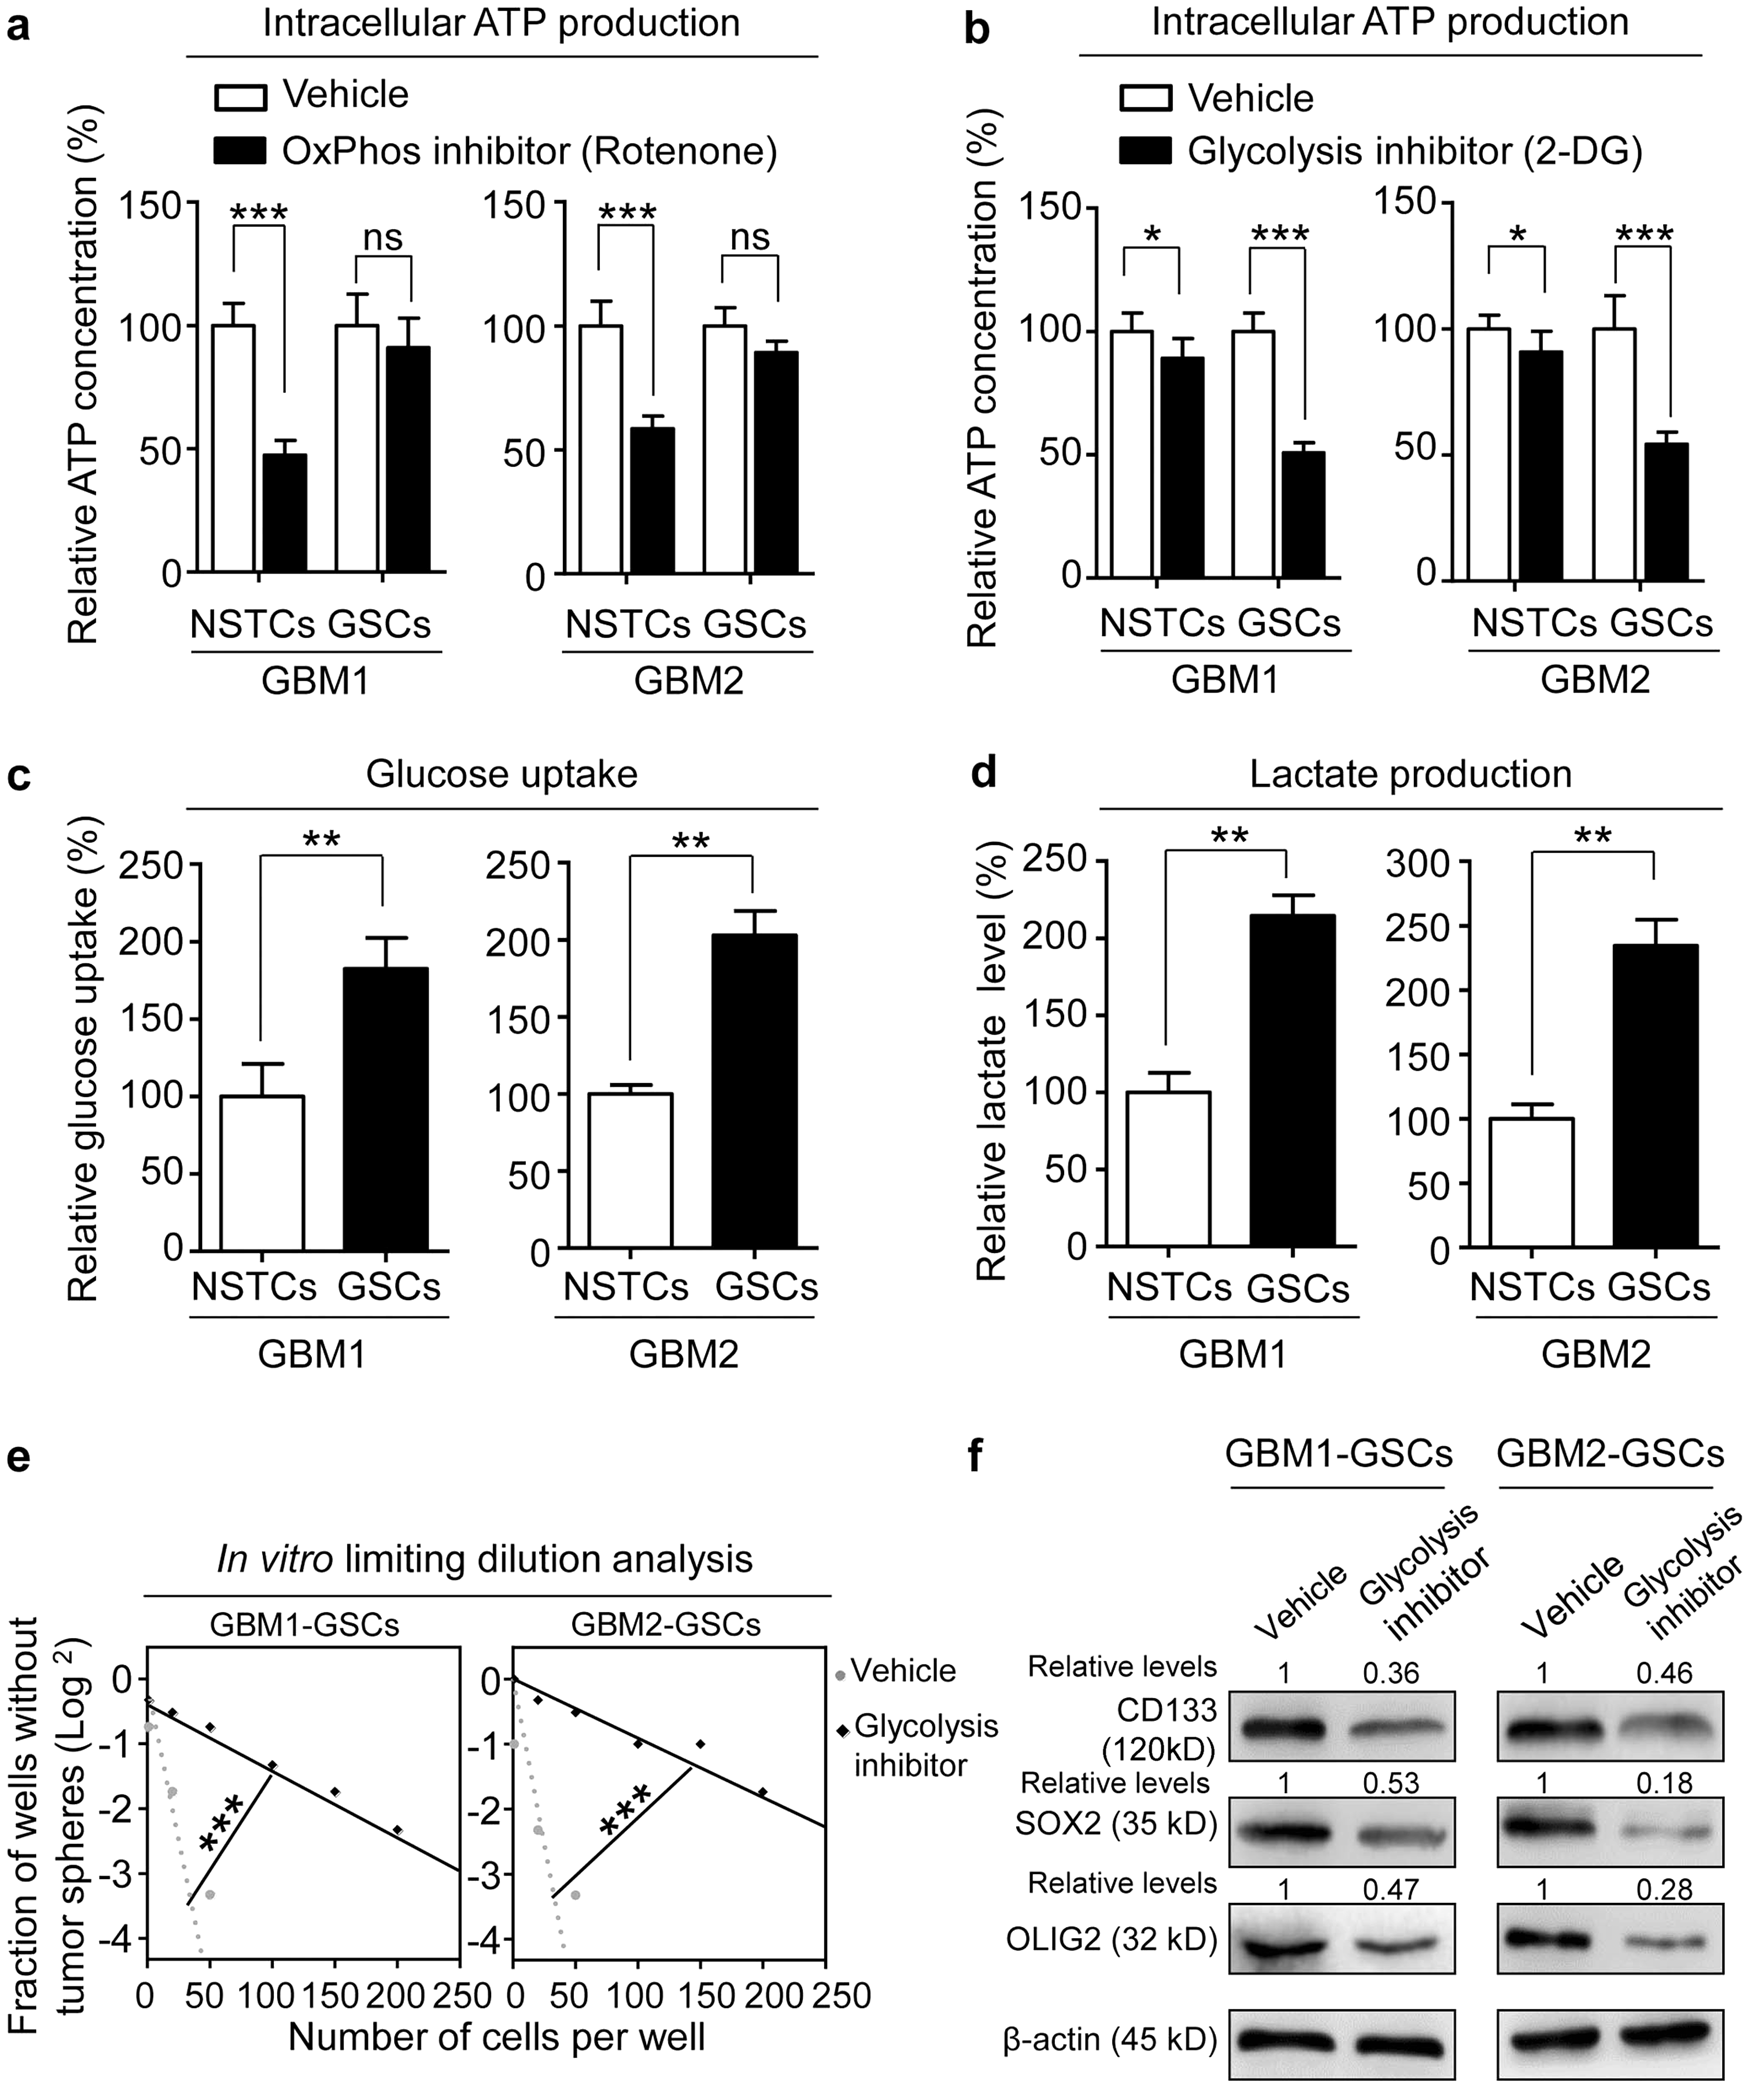 Vdac2 Interacts With Pfkp To Regulate Glucose Metabolism And Switching Regulators Using Lm 2575 2577 Phenotypic Reprogramming Of Glioma Stem Cells Cell Death Disease